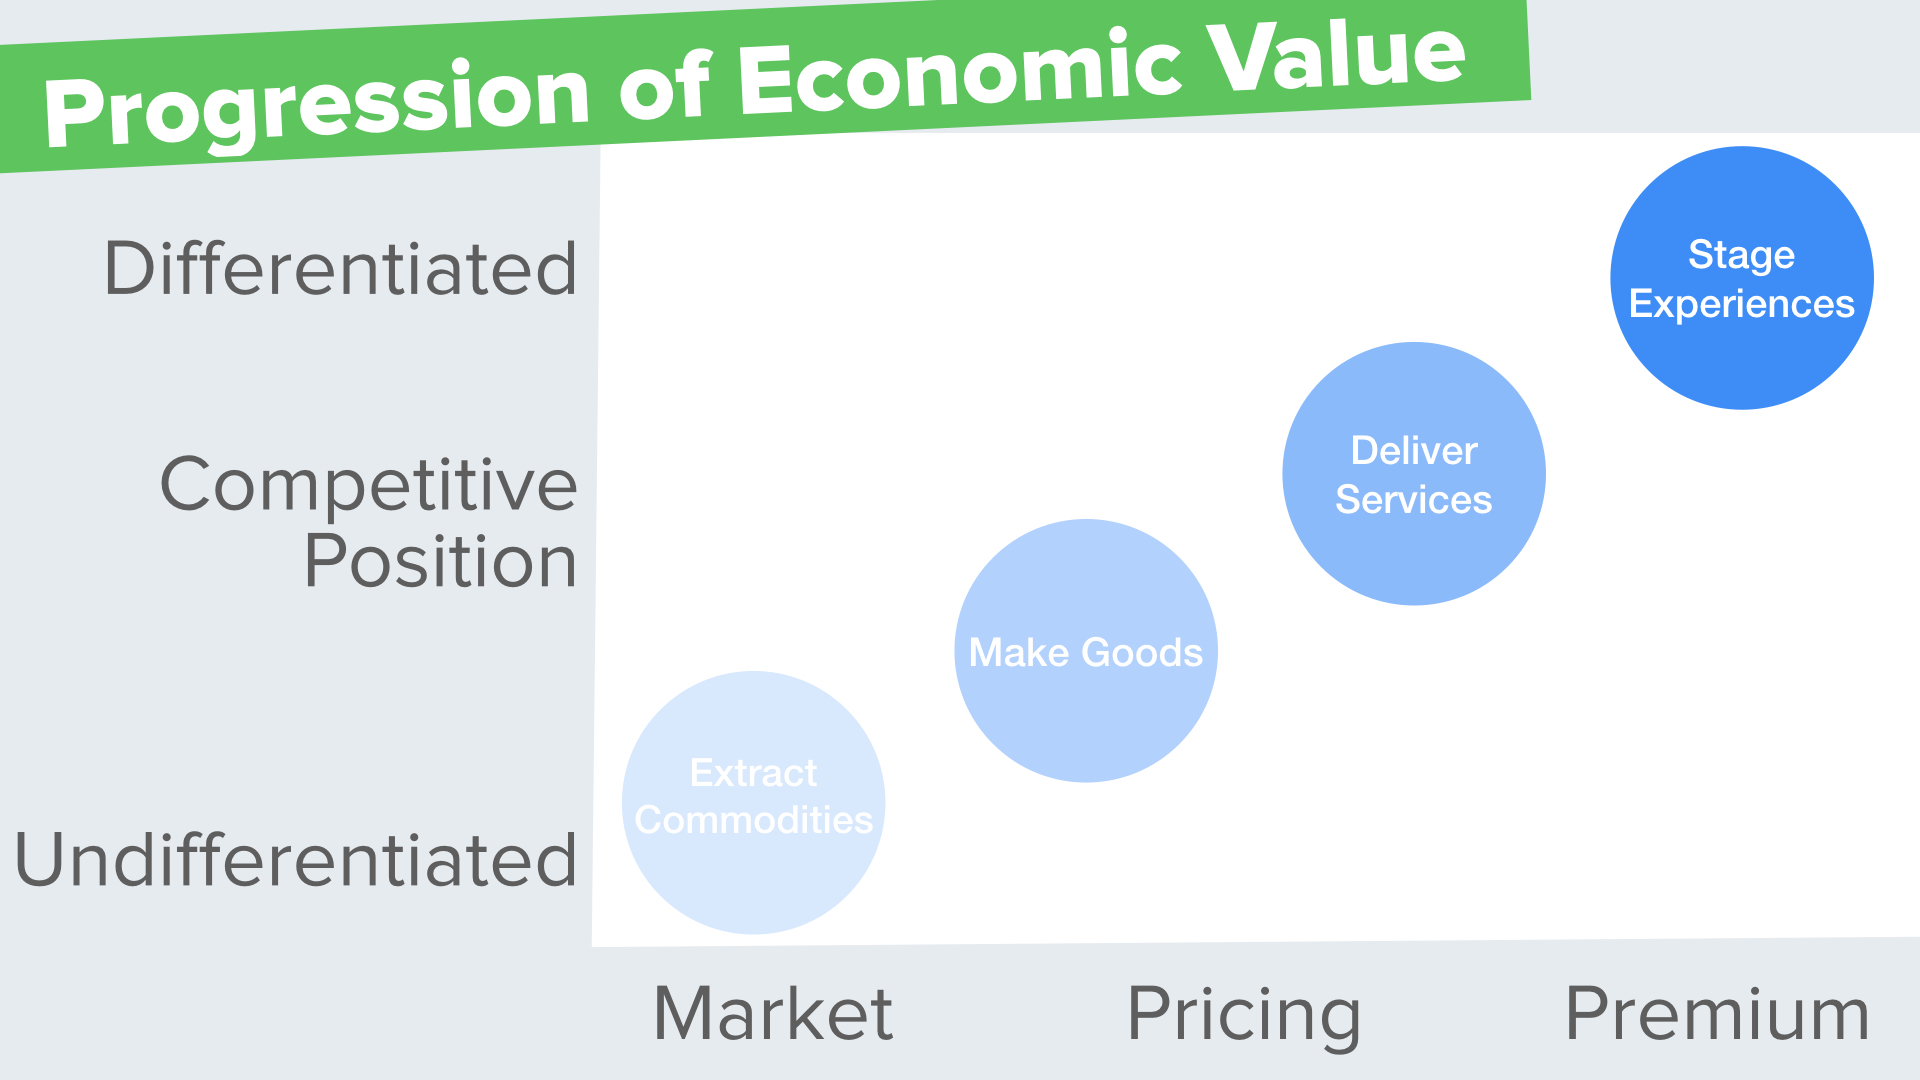 Experiential Store Experience Economy Progression of Value iAdvize